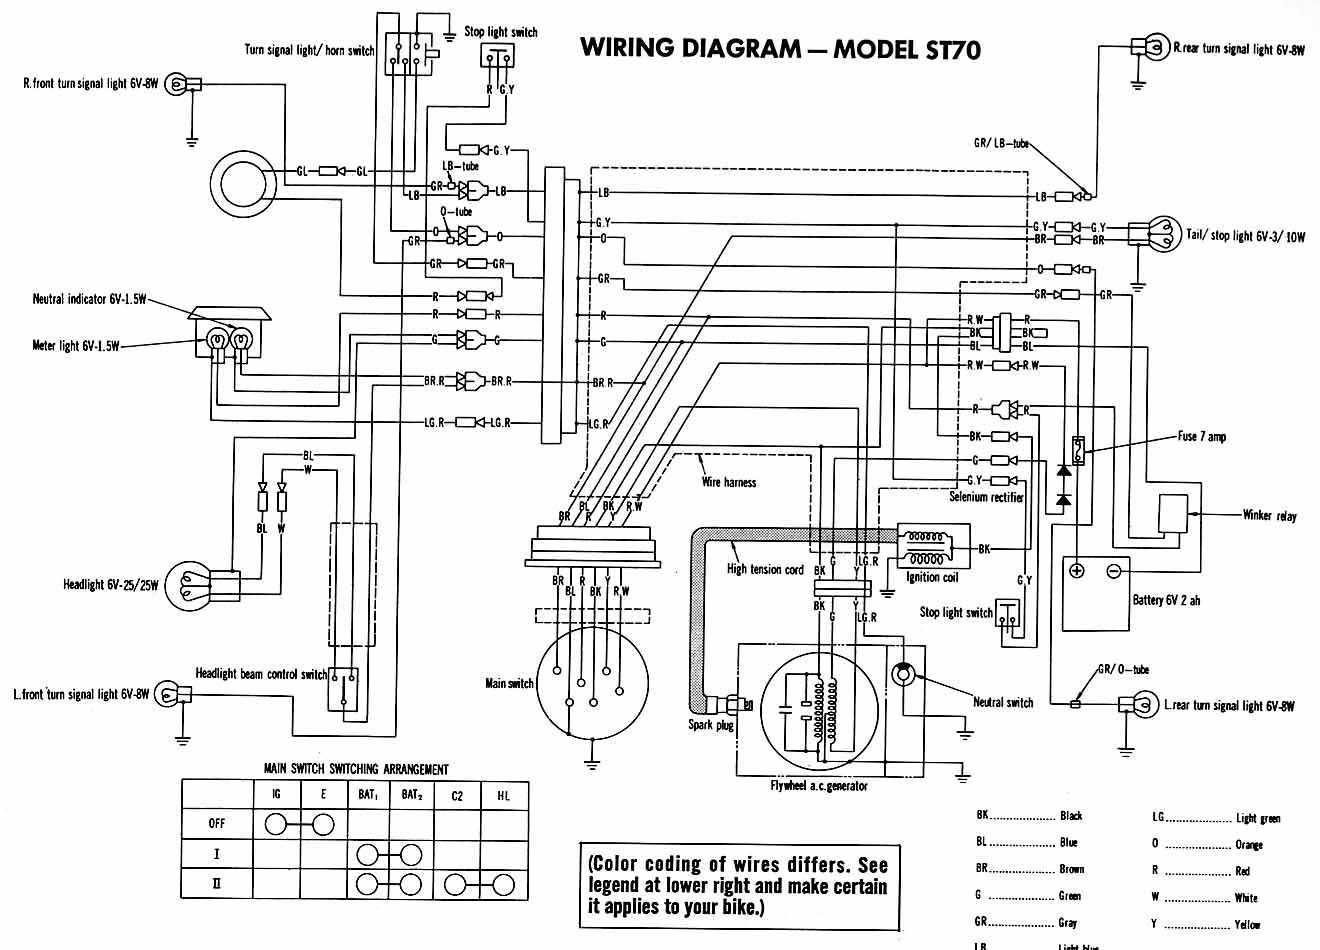 1998 honda crv wiring diagram repair guides diagrams 06 chevy cobalt gx390 fuse box